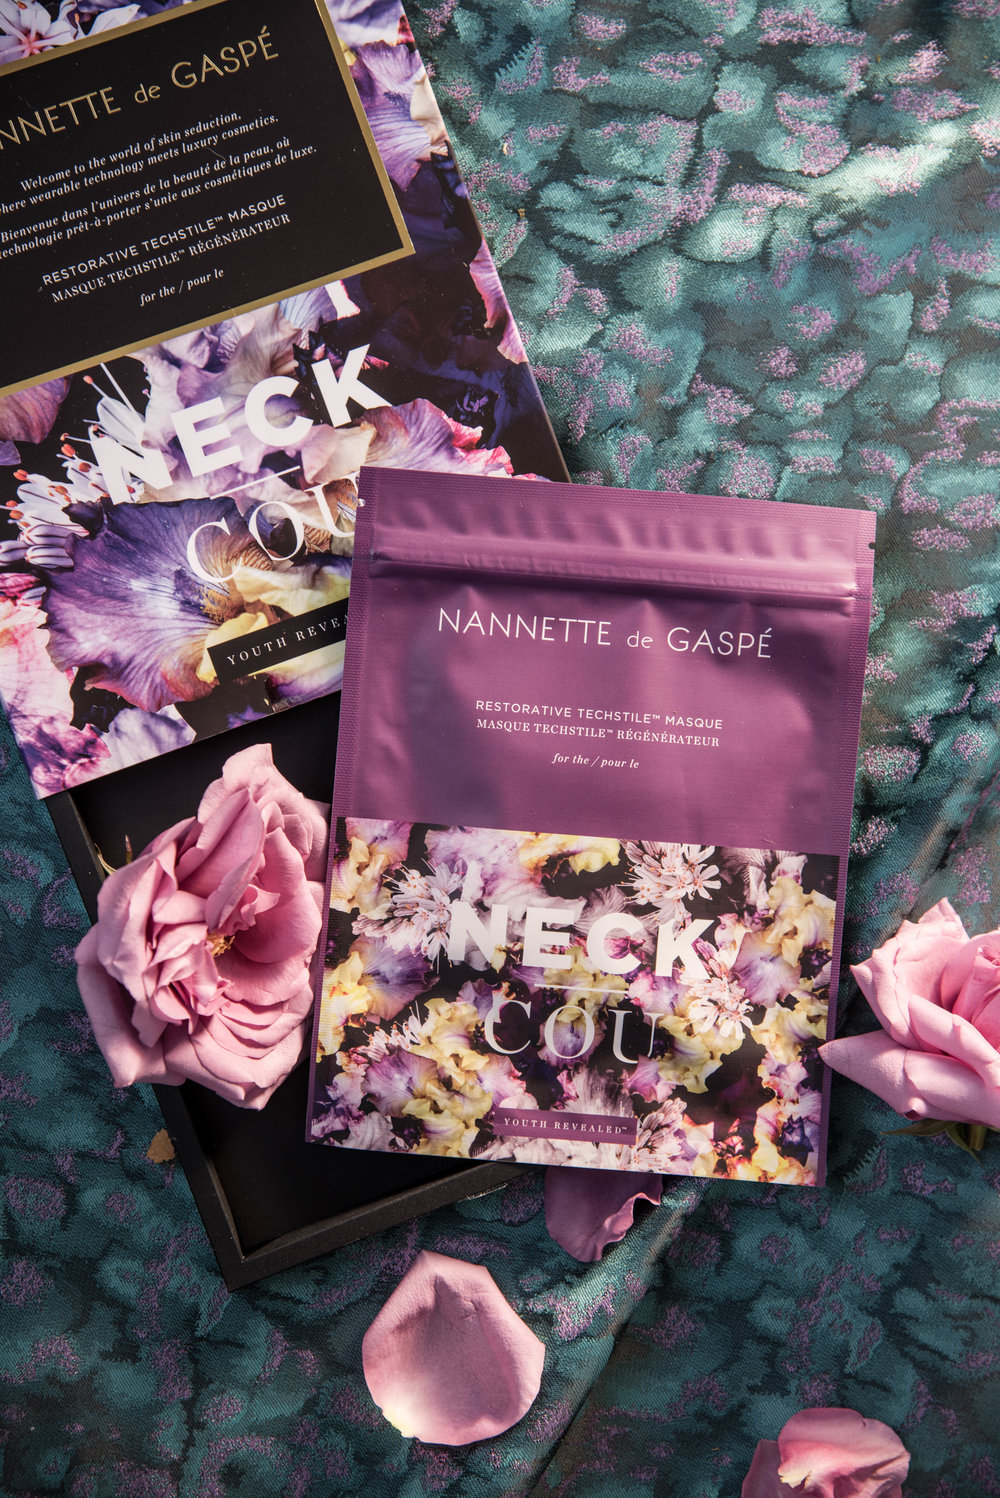 ROSE & IVY Journal Gift Guide 2016 The Mood Dark Florals Nanette de Gaspe Masque for the Neck